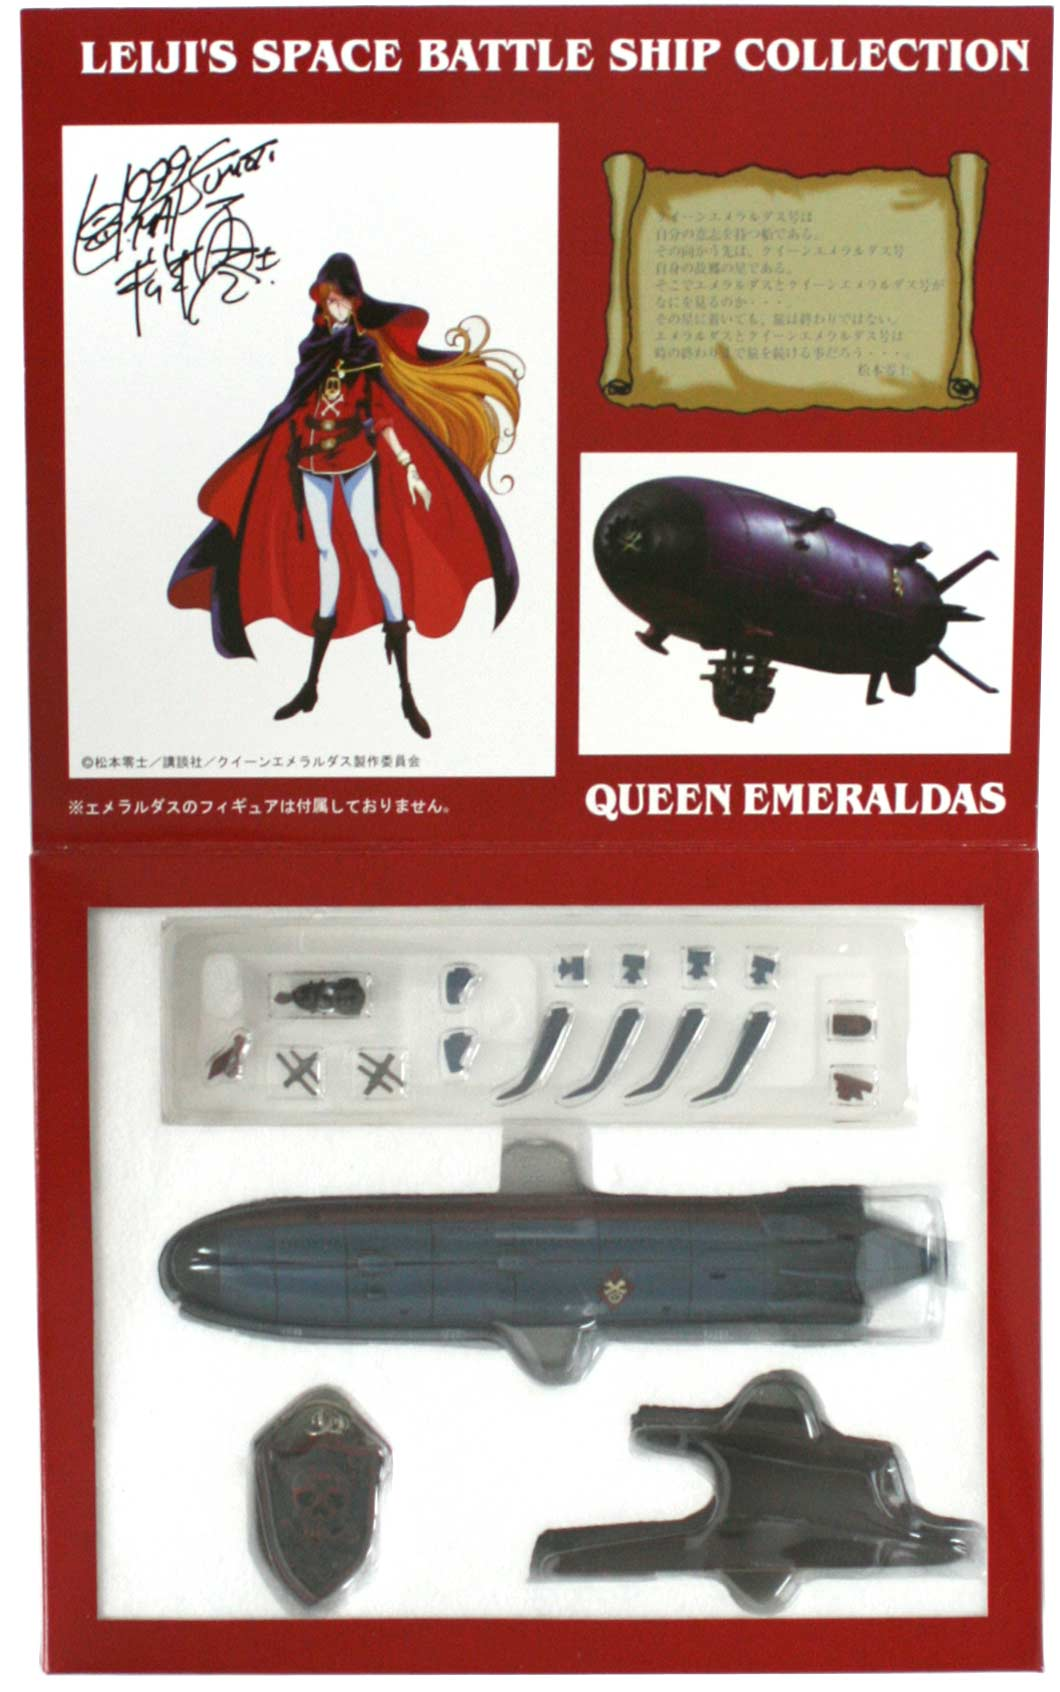 Packaging (ouvert) du Queen Emeraldas - Leiji's Space ship collection (jouet)